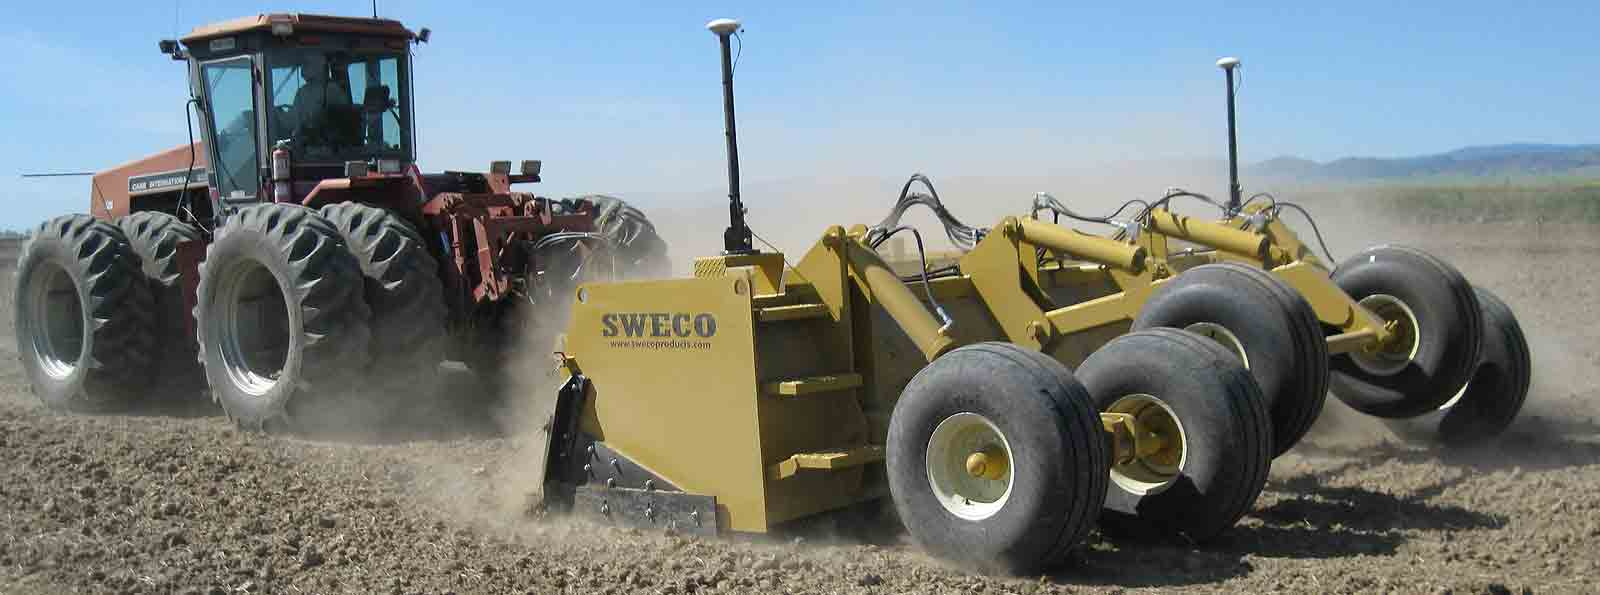 SWECO EQUIPMENT